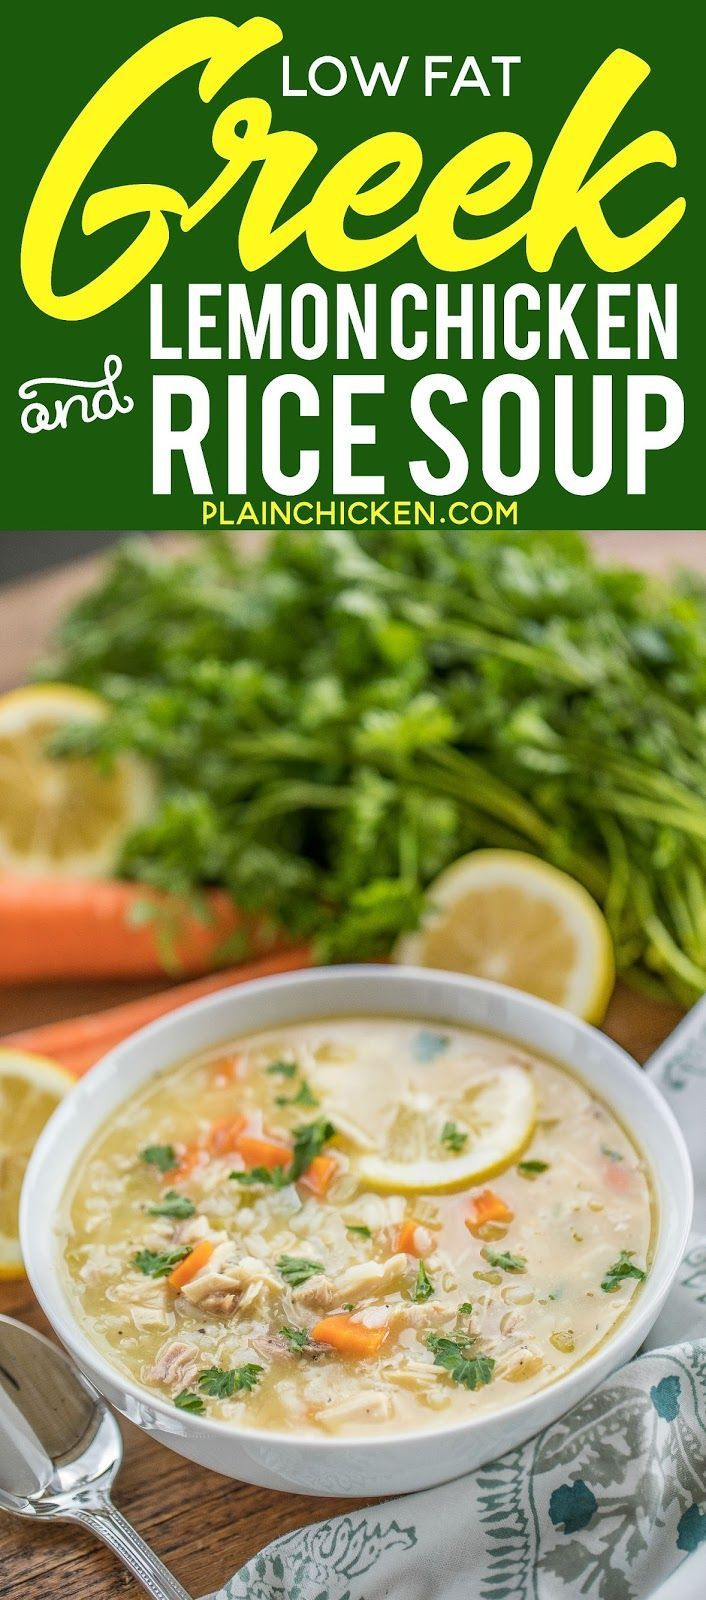 Low Fat Greek Lemon Chicken & Rice Soup - seriously the most delicious chicken soup EVER! Ready in 20 minutes! Chicken, chicken broth, carrots, celery, Greek seasoning, cream of chicken soup, garlic, lemon juice and rice. Made this for dinner and everyone could not stop raving about it! We make this at least twice a month now. Can freeze leftovers. #chickensoup #soup #greeklemonrice